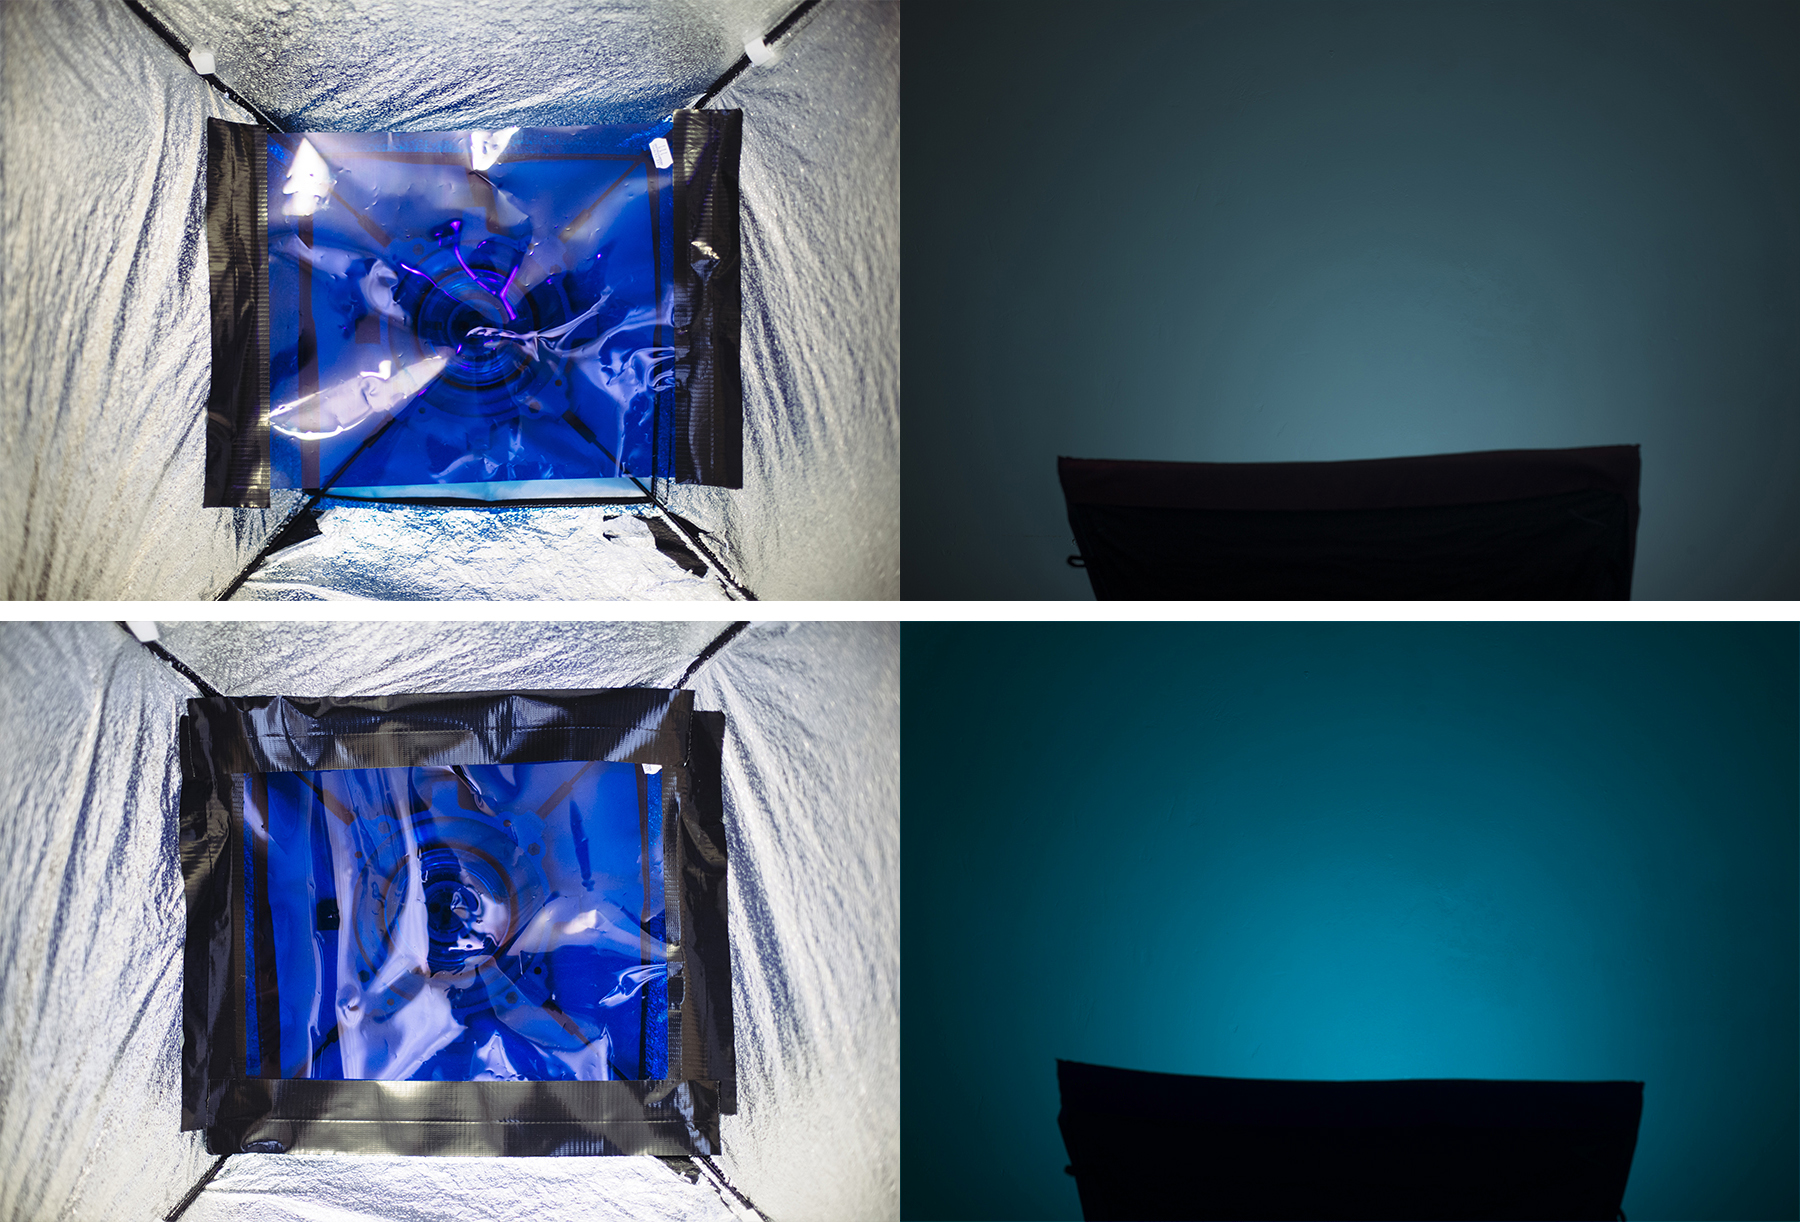 The top images here show that I have only taped the gel inside my softbox on two sides. The resulting righthand side image is showing a paler, washed out colour that is very susceptible to being washed out even further by other lights in the setup.The image at the bottom shows the gel taped in completely on all four sides so that no white light is allowed to escape and wash out the desired colour resulting in a rich and highly saturated colour.